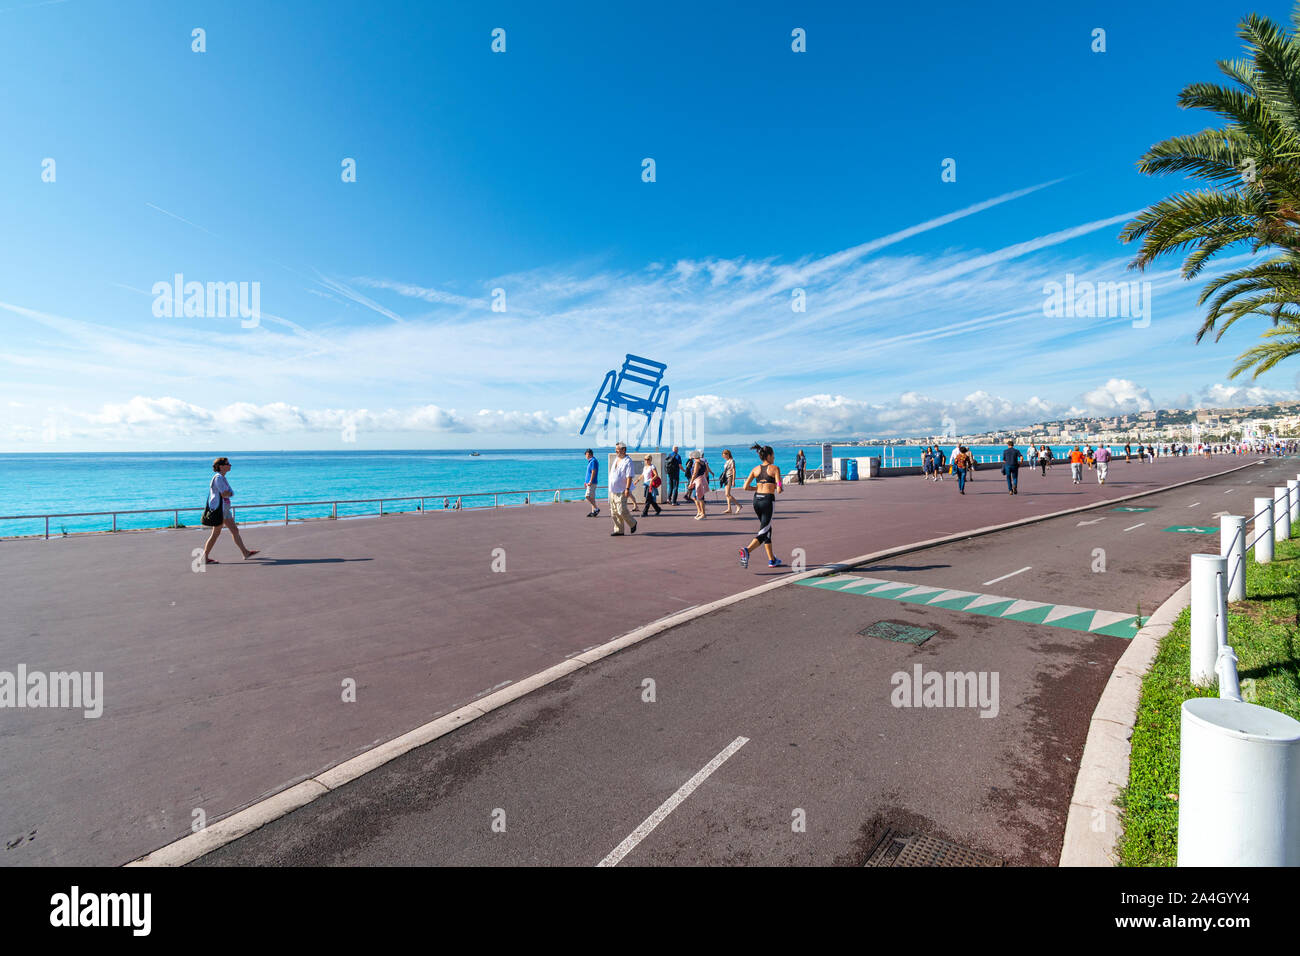 Joggers and walkers pass by the Blue Chair balancing along the Promenade des Anglais on the French Riviera in Nice France along the Mediterranean Sea. Stock Photo